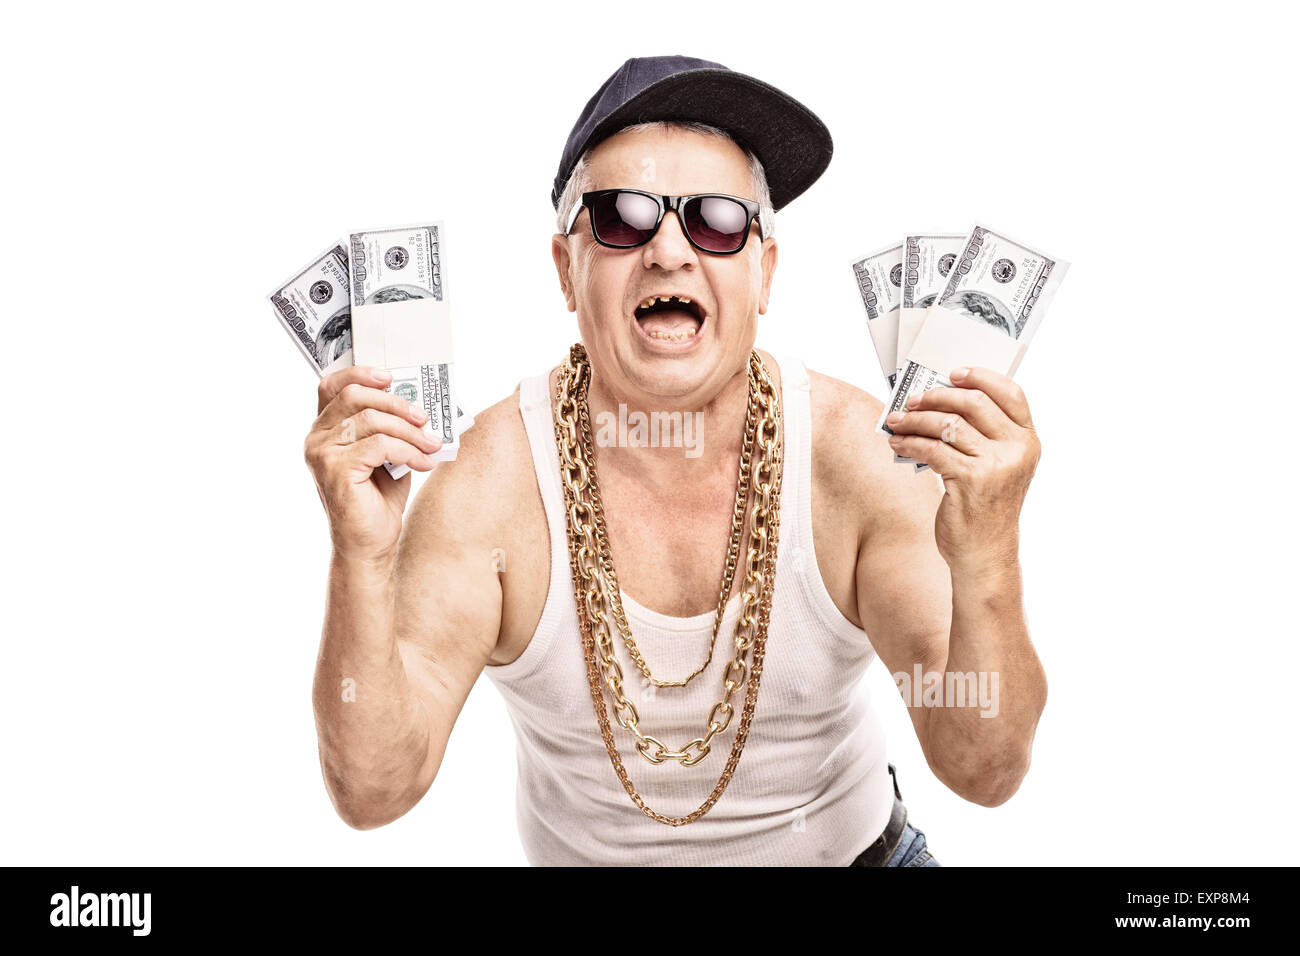 Delighted senior in hip hop outfit holding a few stacks of money and looking at the camera isolated on white background - Stock Image